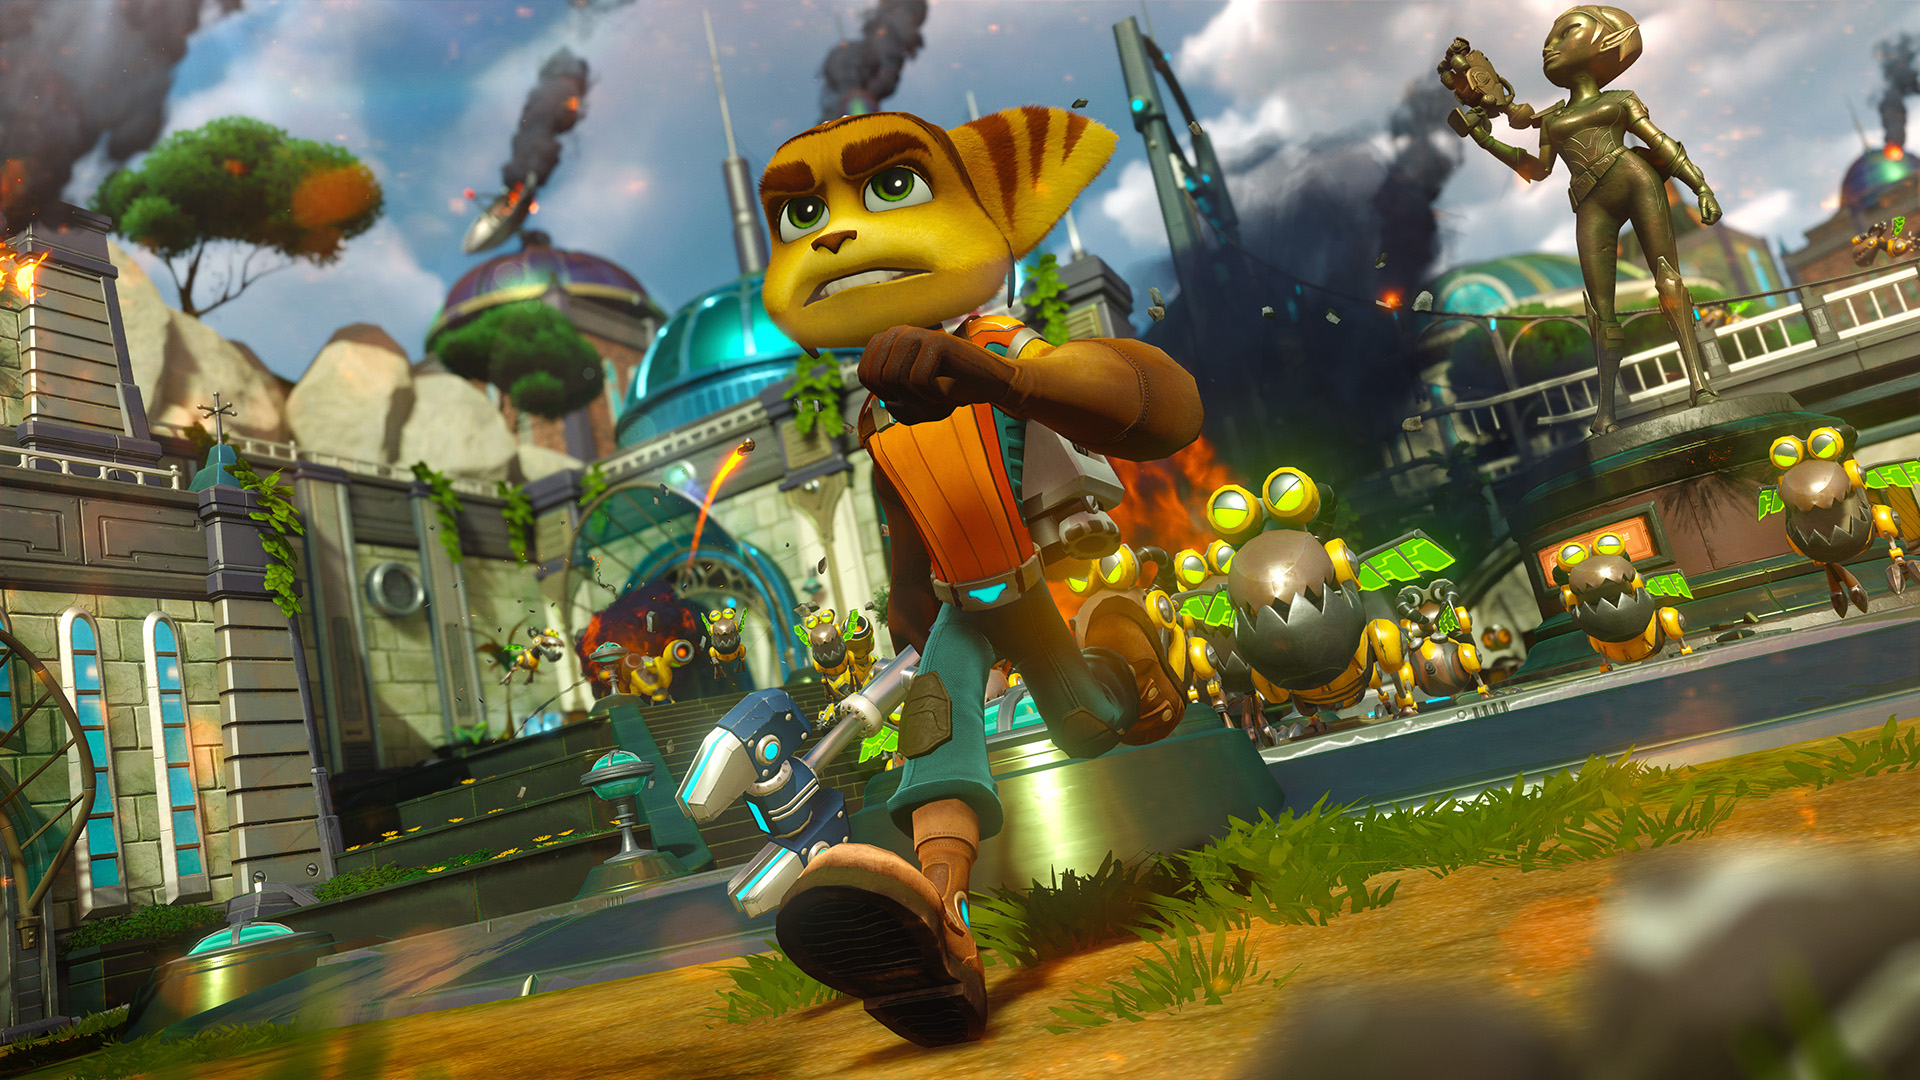 Ratchet & Clank (PS4) - film quality graphics